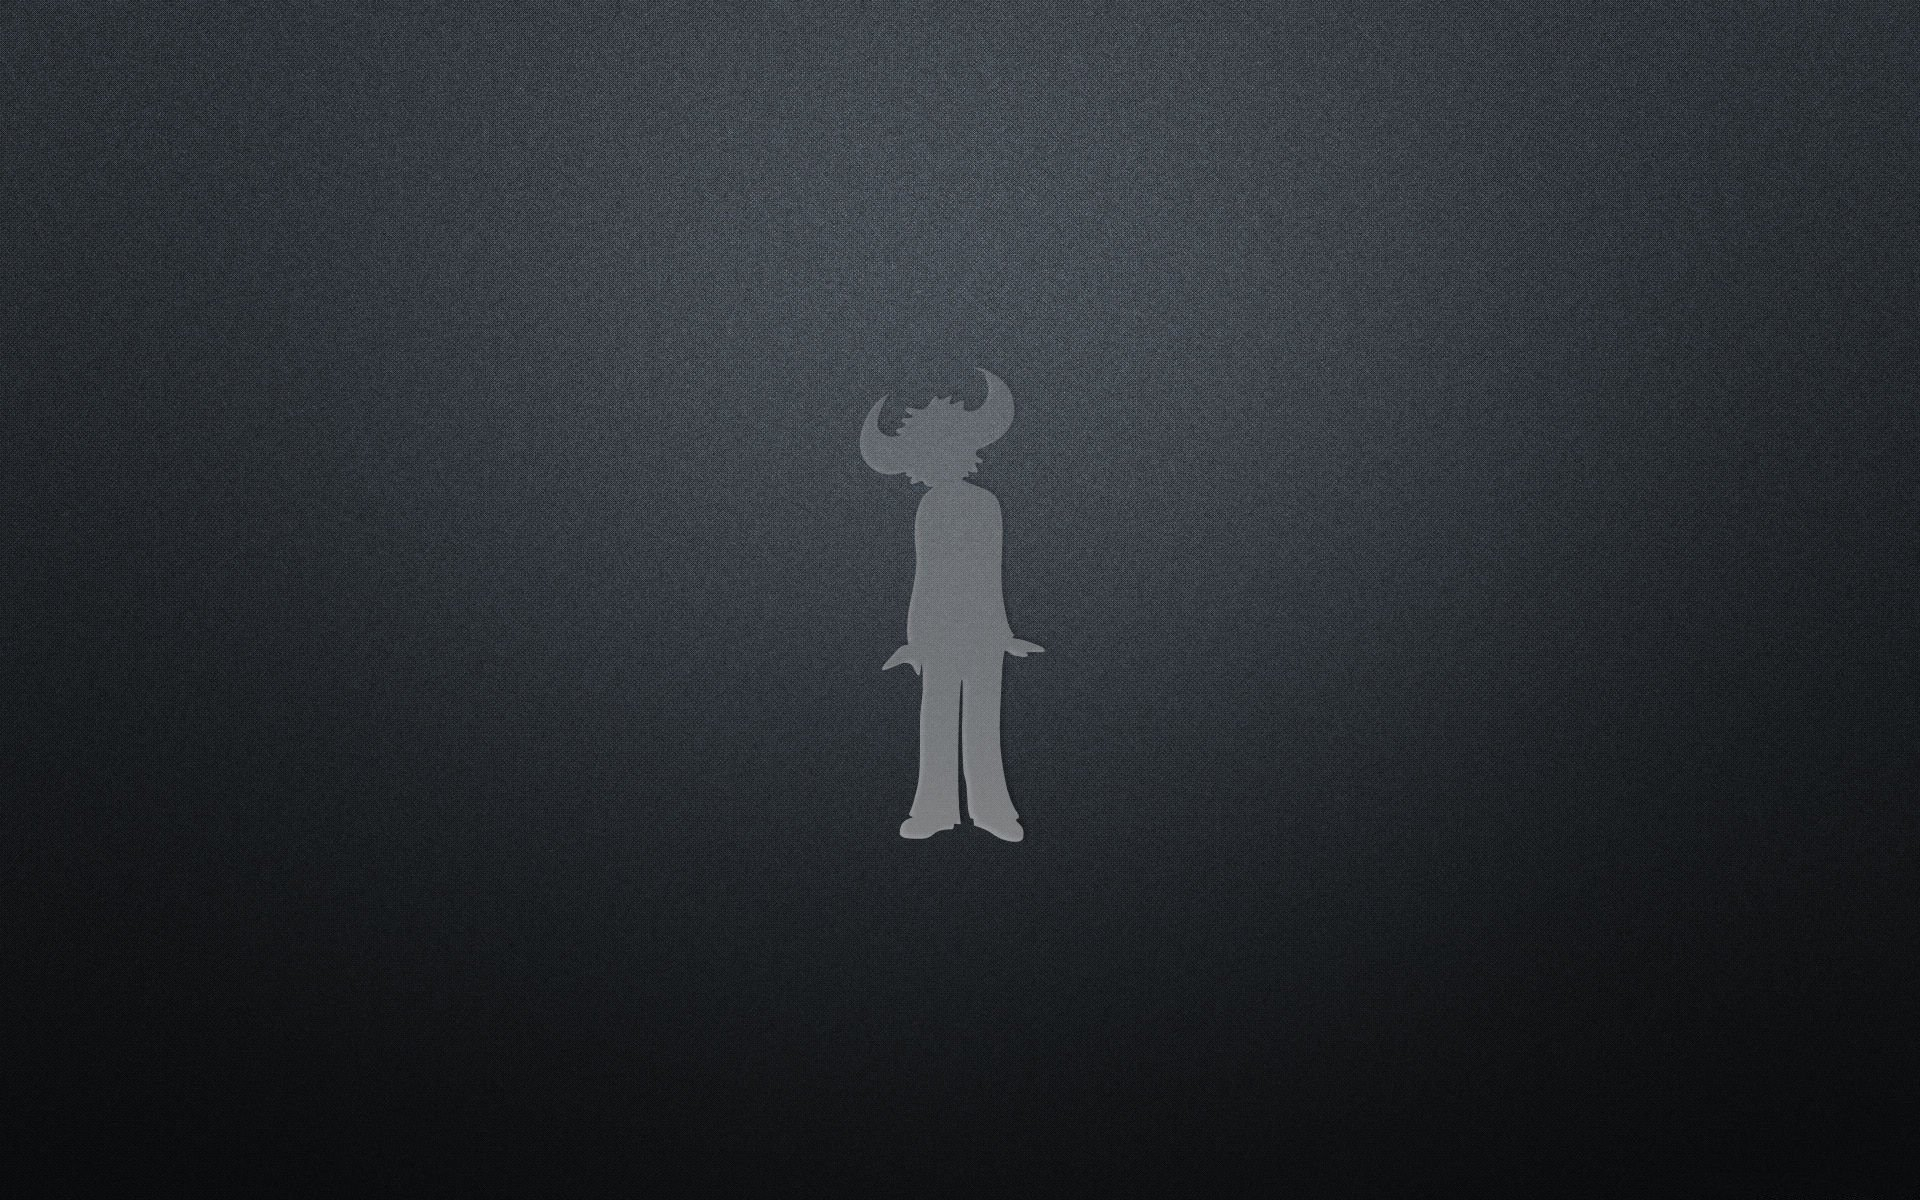 buffalo man jamiroquai music logo black minimalism HD wallpaper 1920x1200